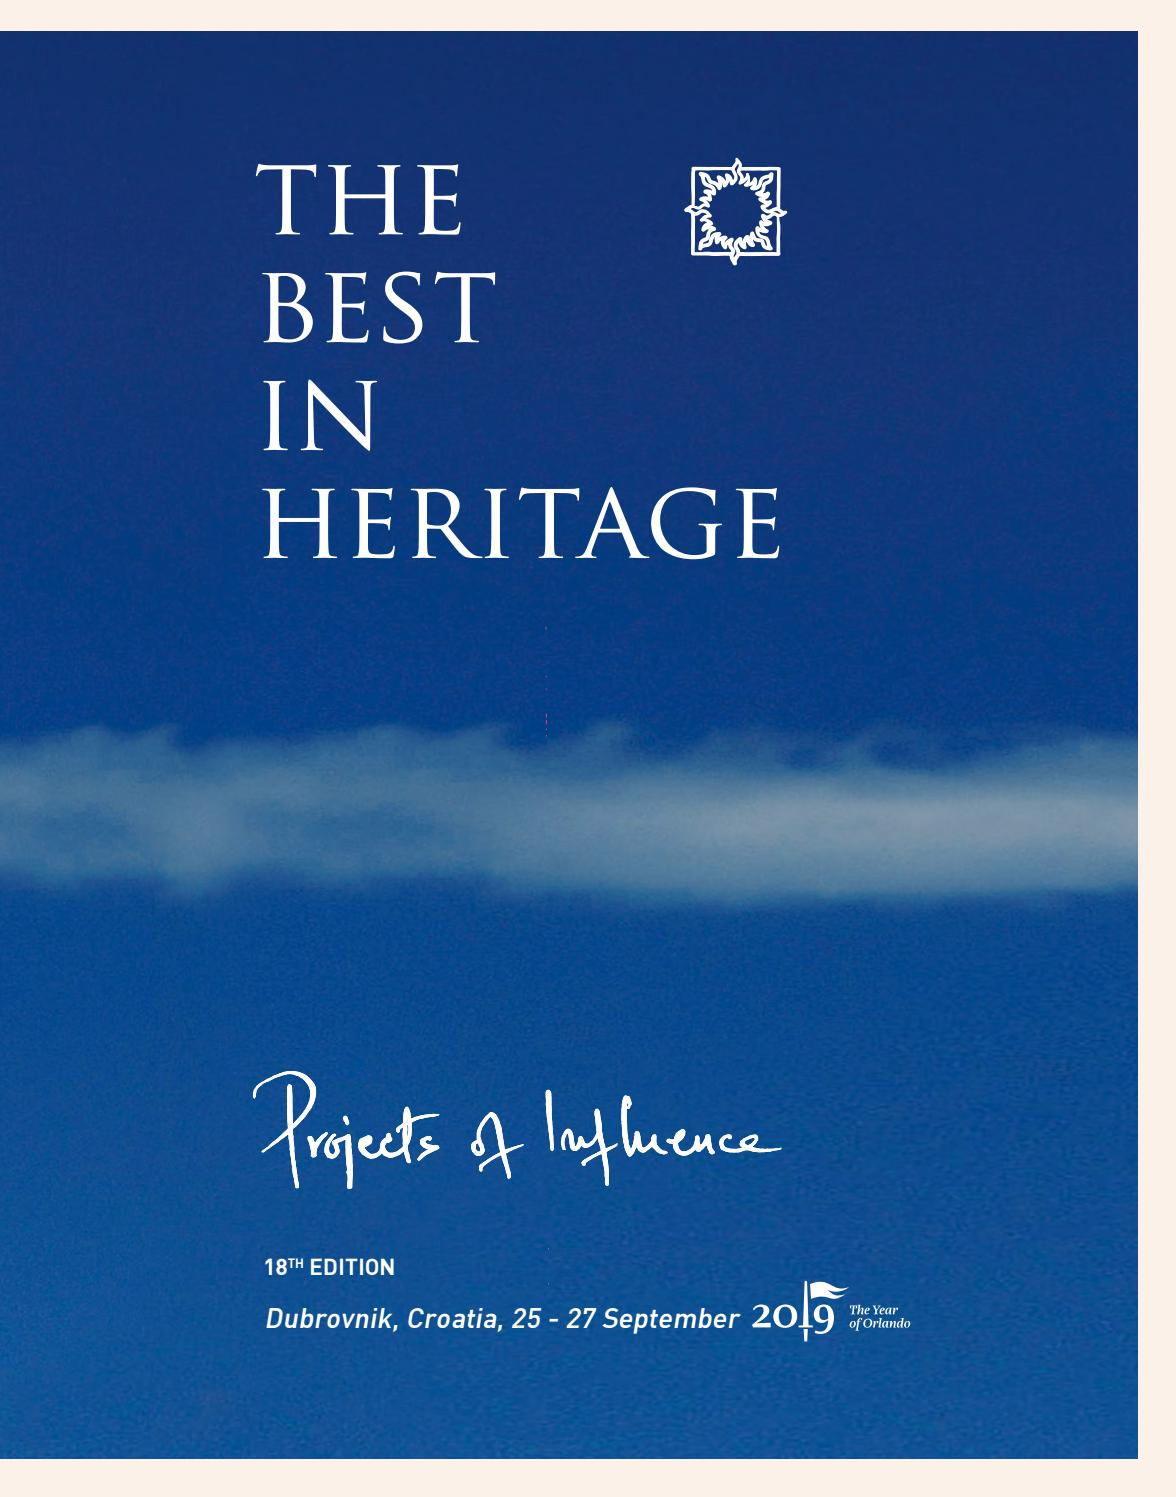 Prix Corian Au M2 the best in heritage 2019best in heritage - issuu